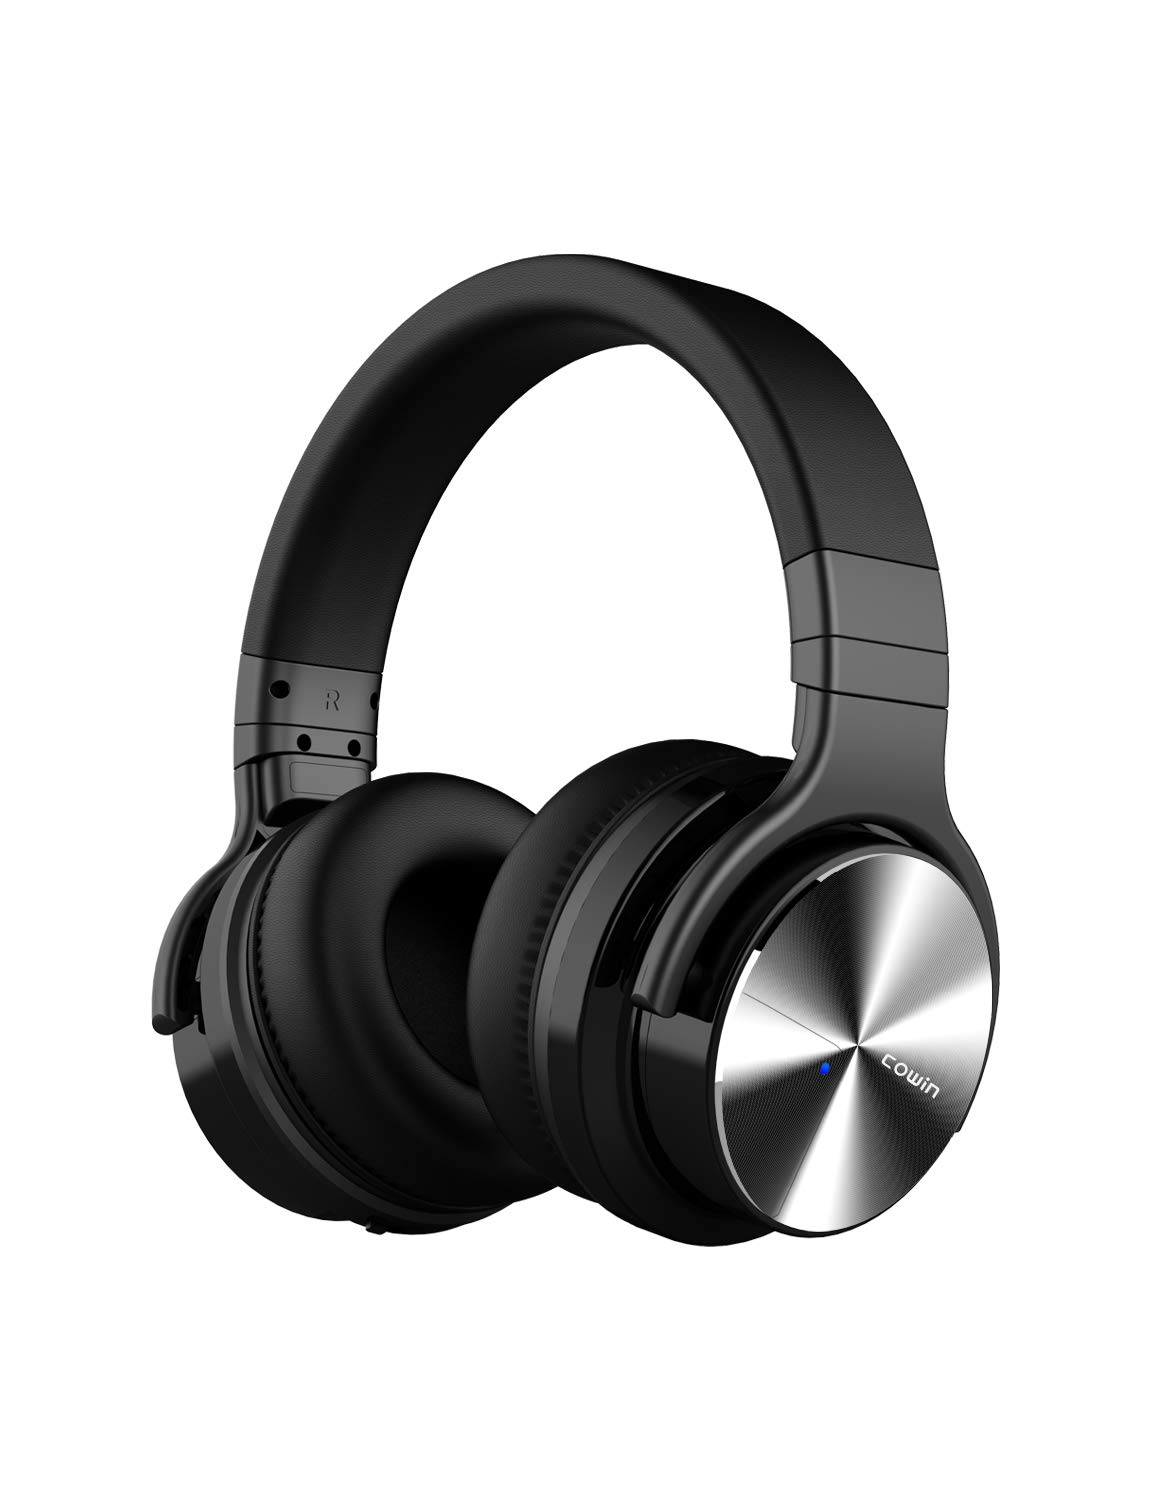 COWIN E7 PRO Active Noise Cancelling Bluetooth Headphones Wireless Headphones Over Ear Deep Bass 30H Playtime for Travel/Work/TV/Computer/Cellphone, Black